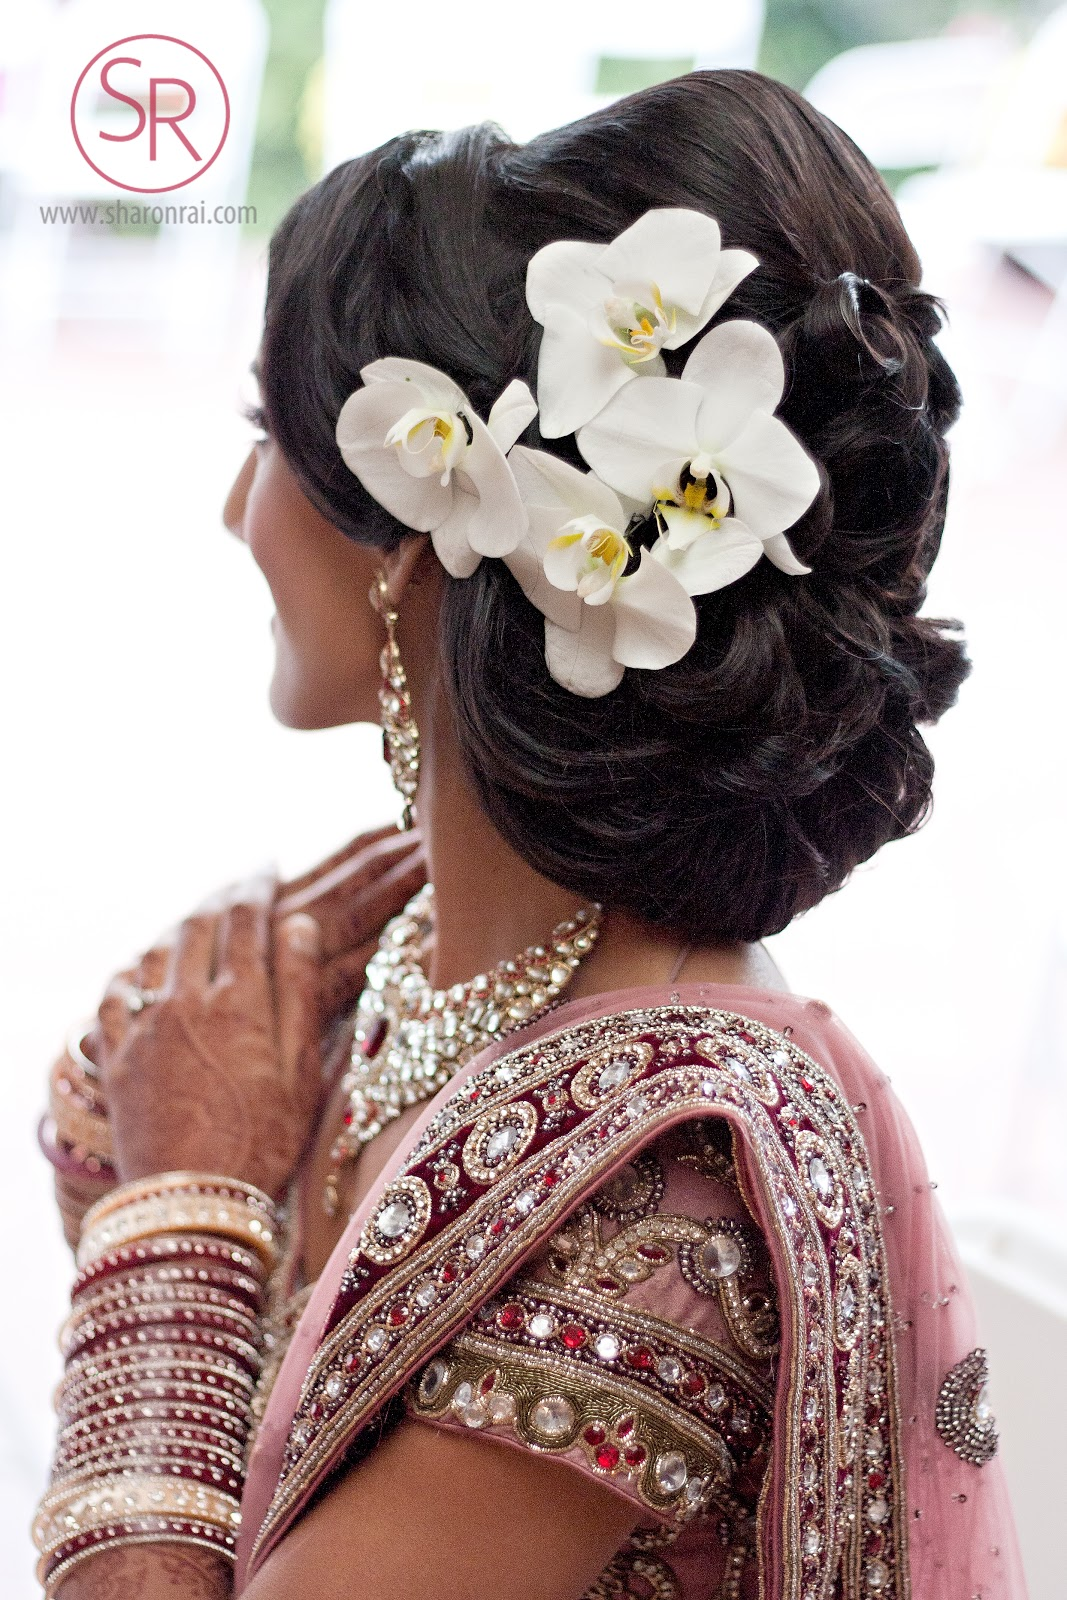 Bridal Makeup, South Asian Bridal Hair, Bridal Hair, Bridal Makeup